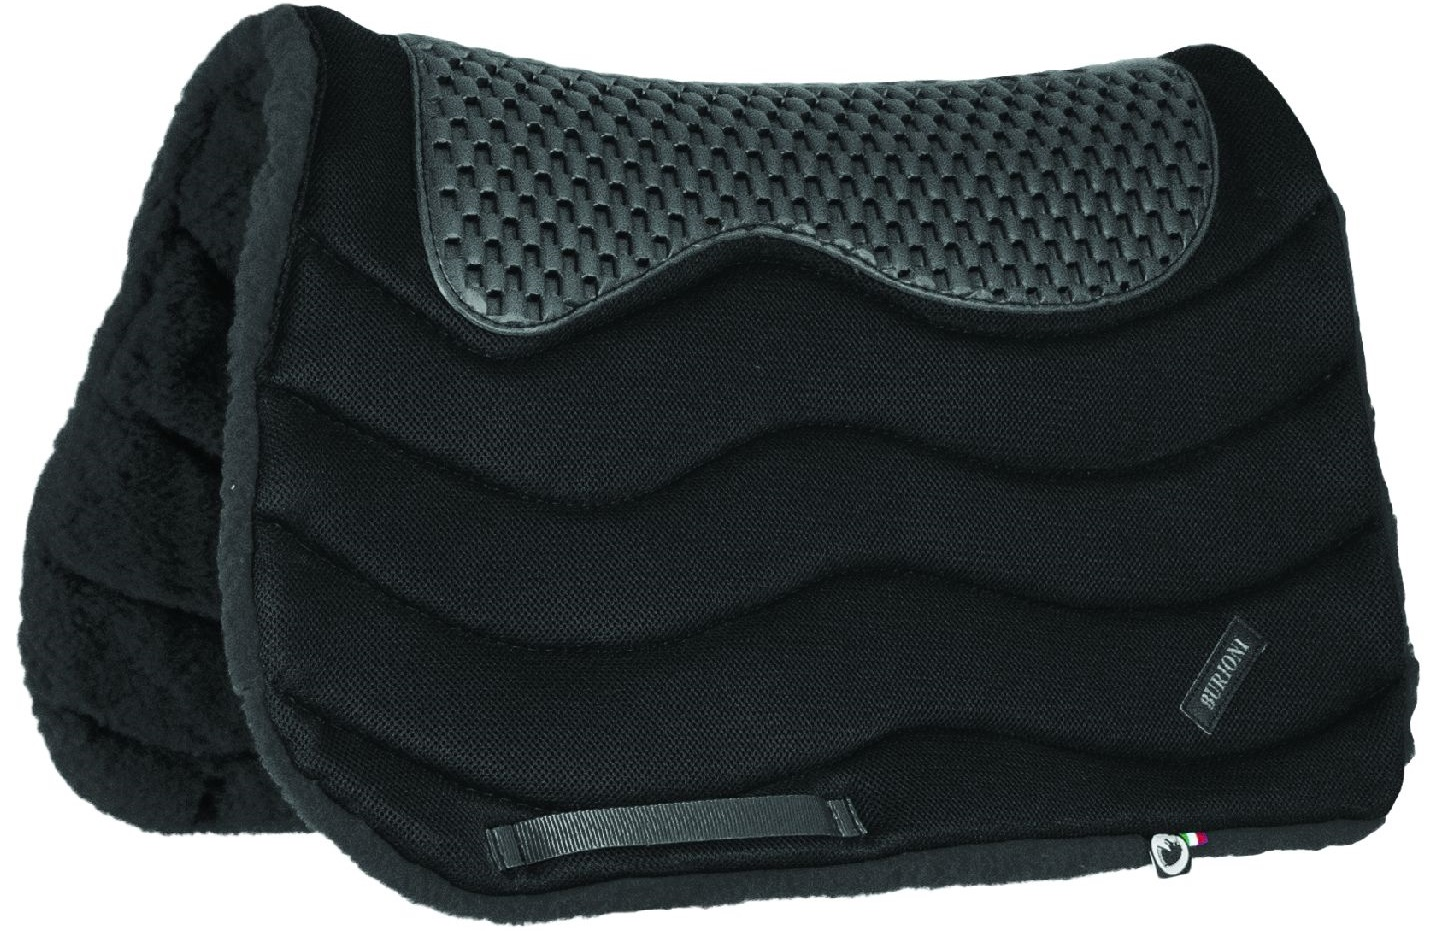 Burioni All Purpose Saddle Pad